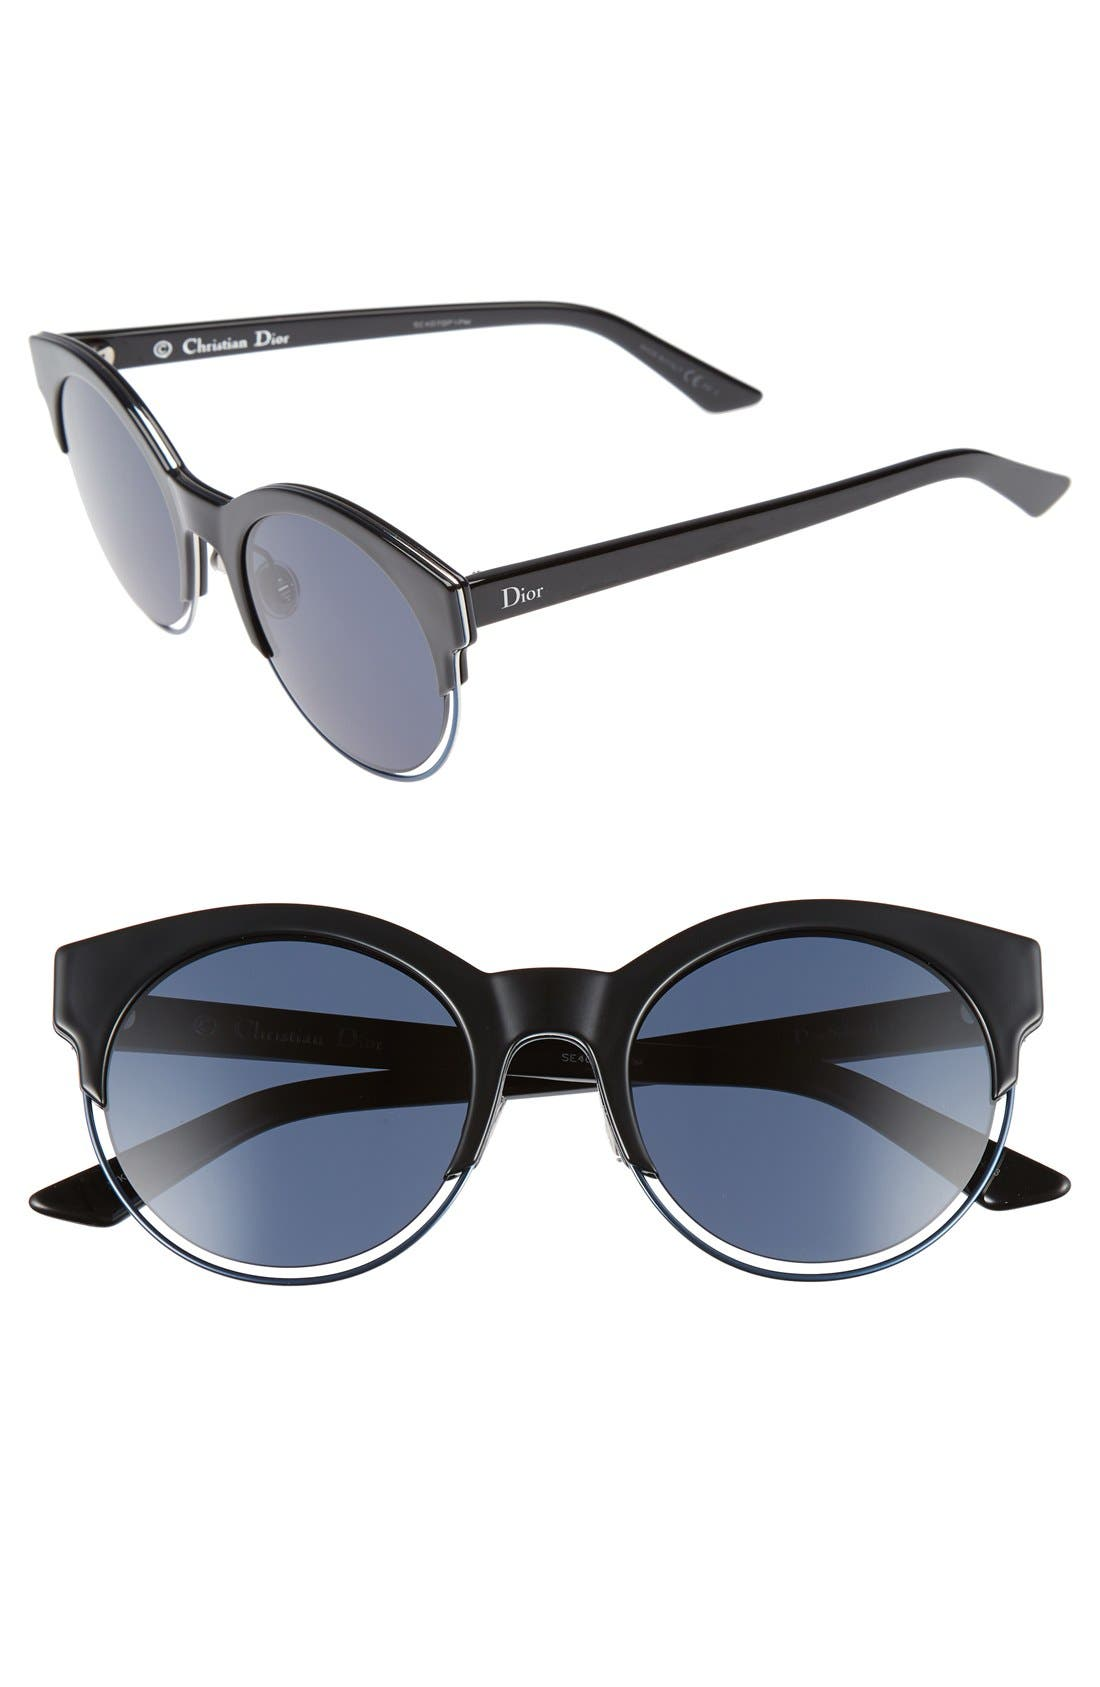 Siderall 1 53mm Round Sunglasses,                             Main thumbnail 2, color,